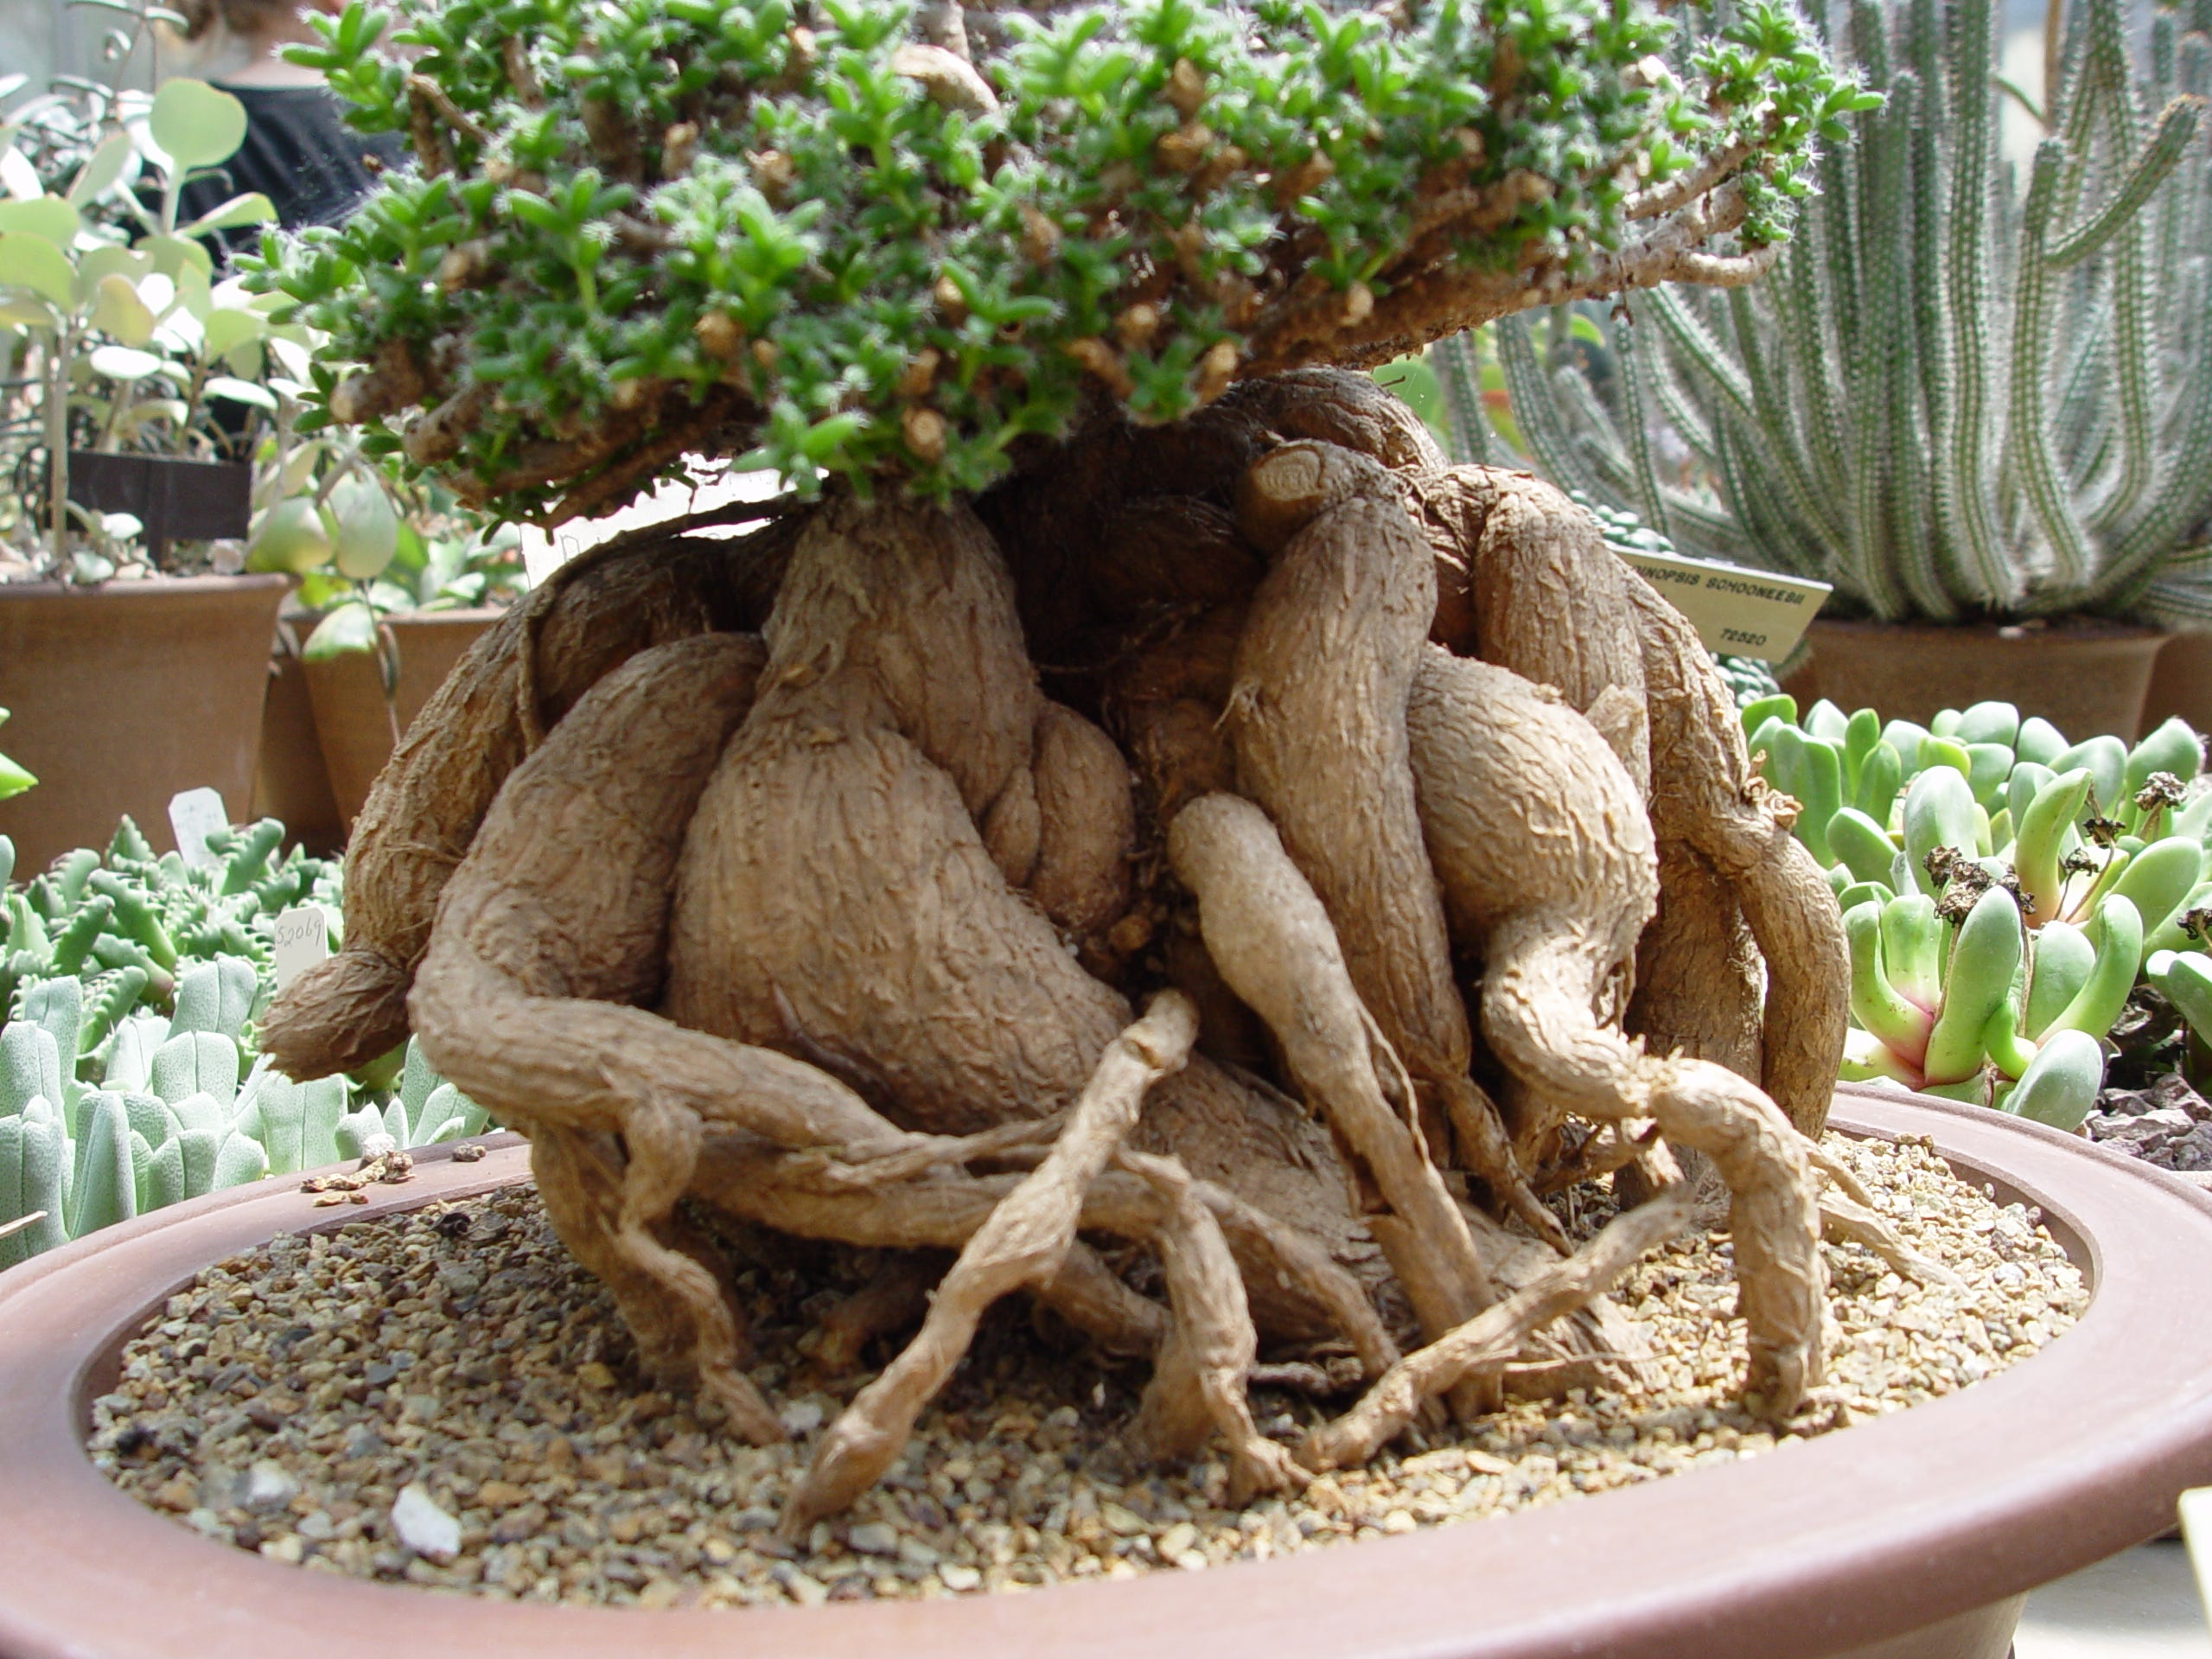 This collector succulent was potted to reveal its water holding root system.